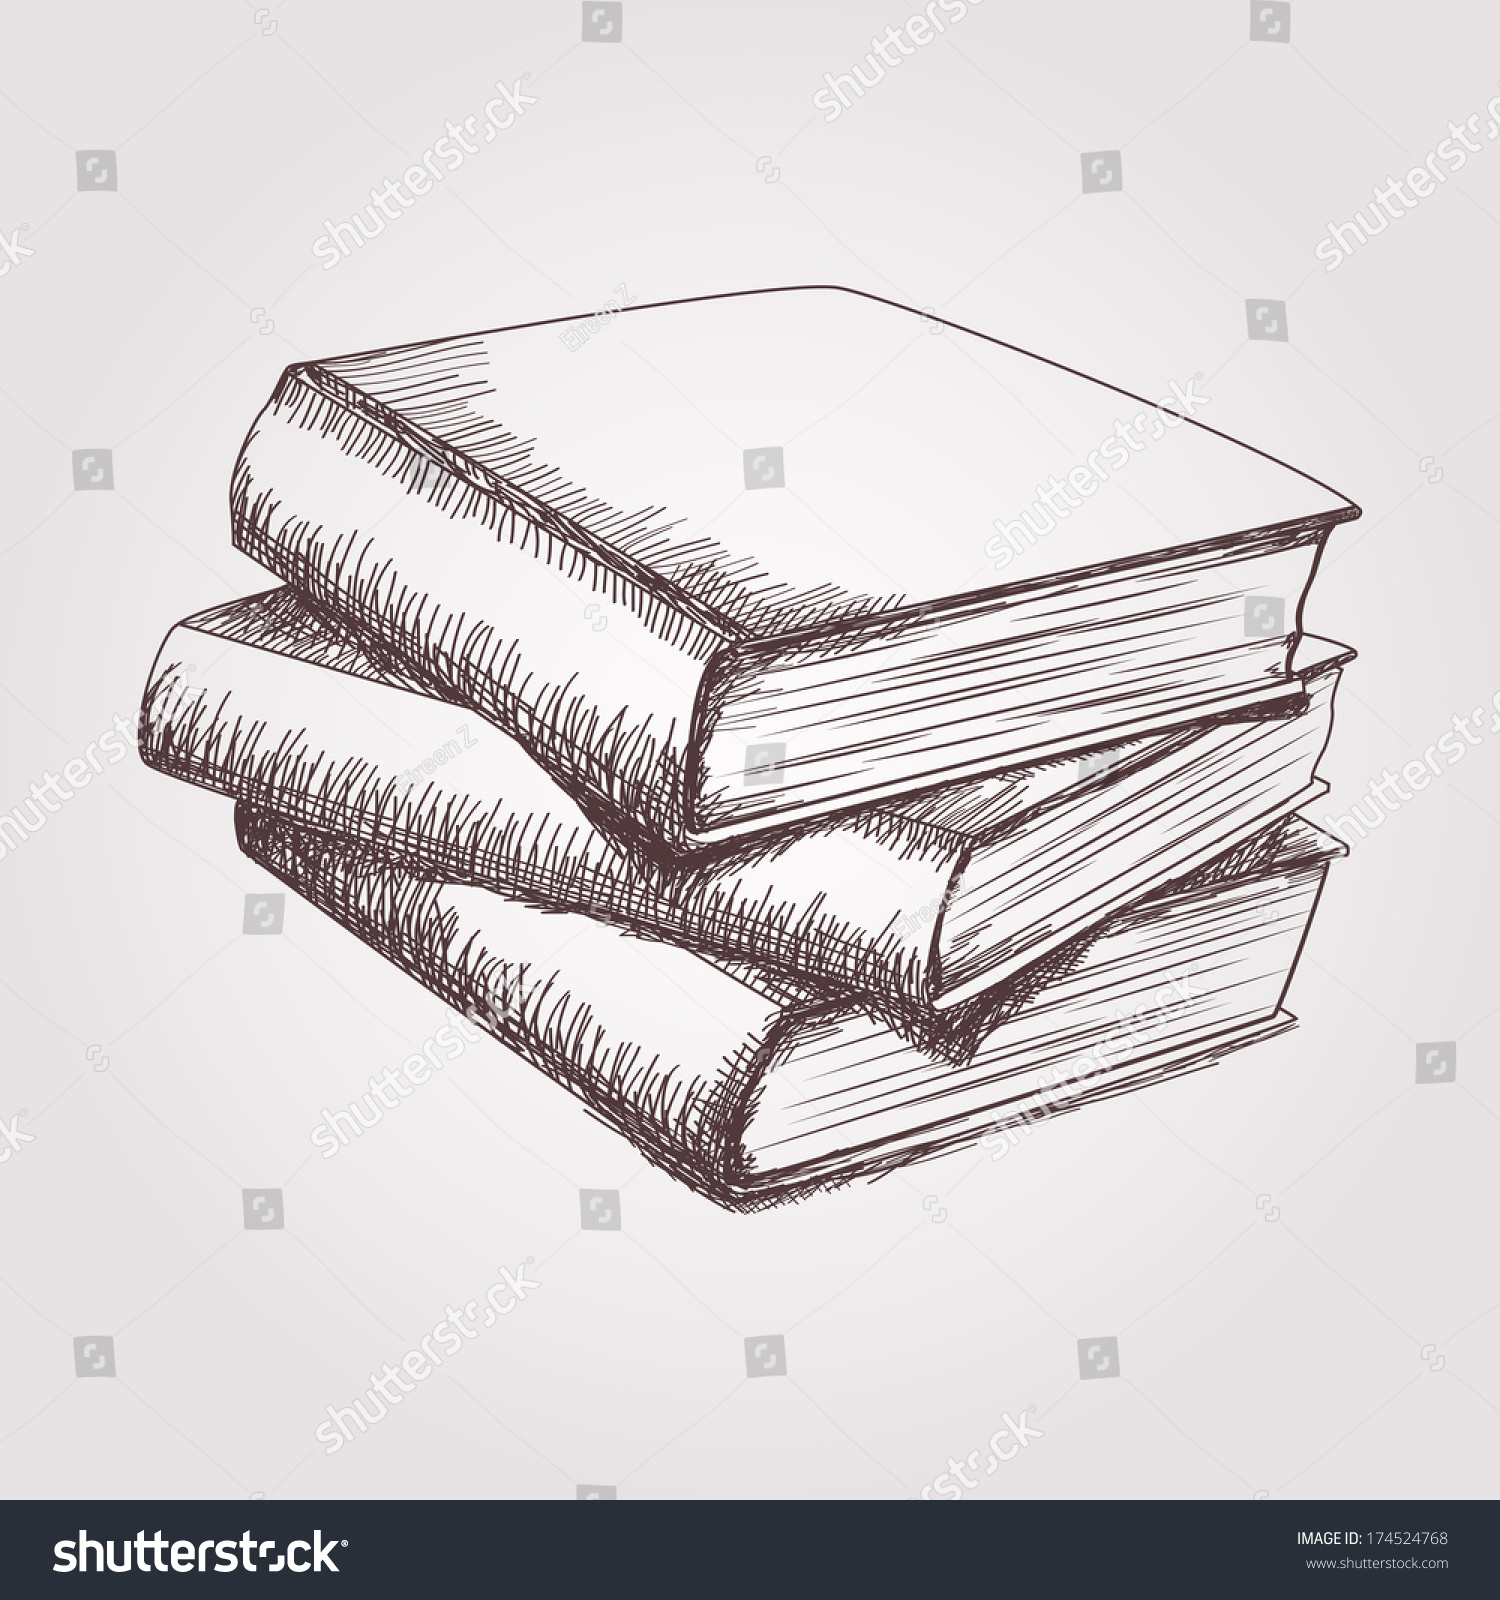 Vector Sketch Books Stack Stock Vector 174524768 ...